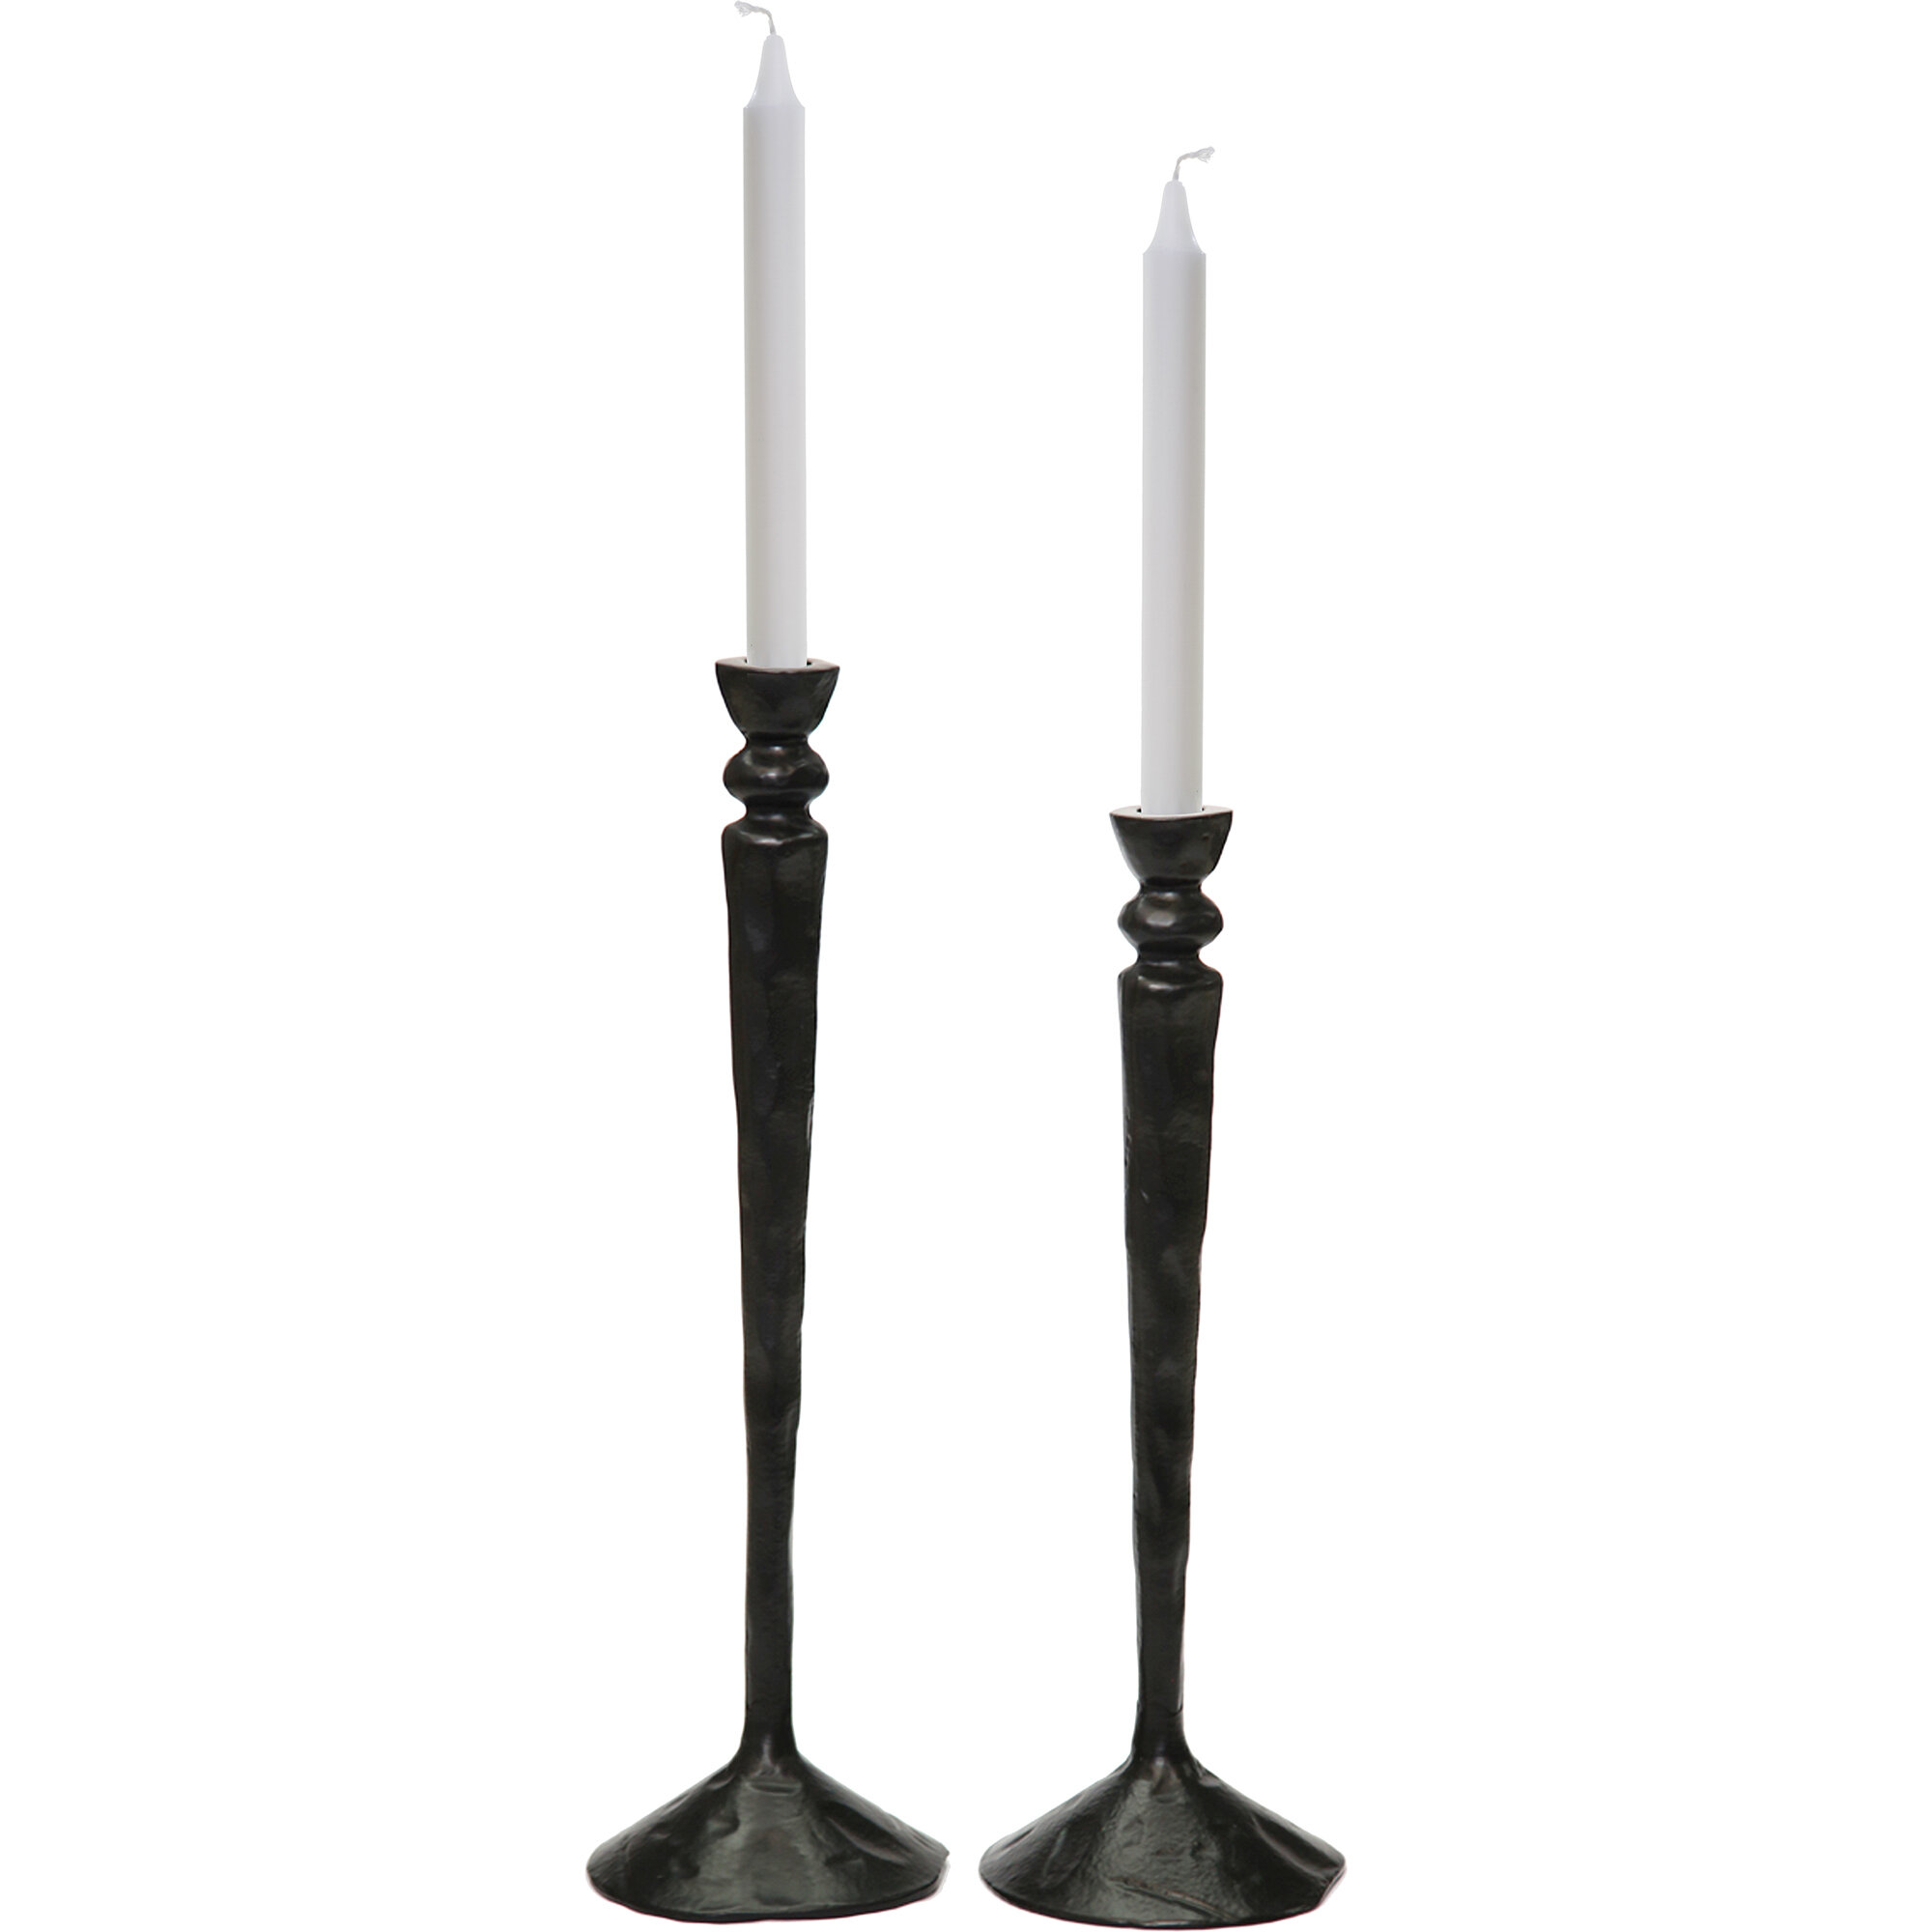 Gracie Oaks 2 Piece Tall Metal Candlestick Set Wayfair